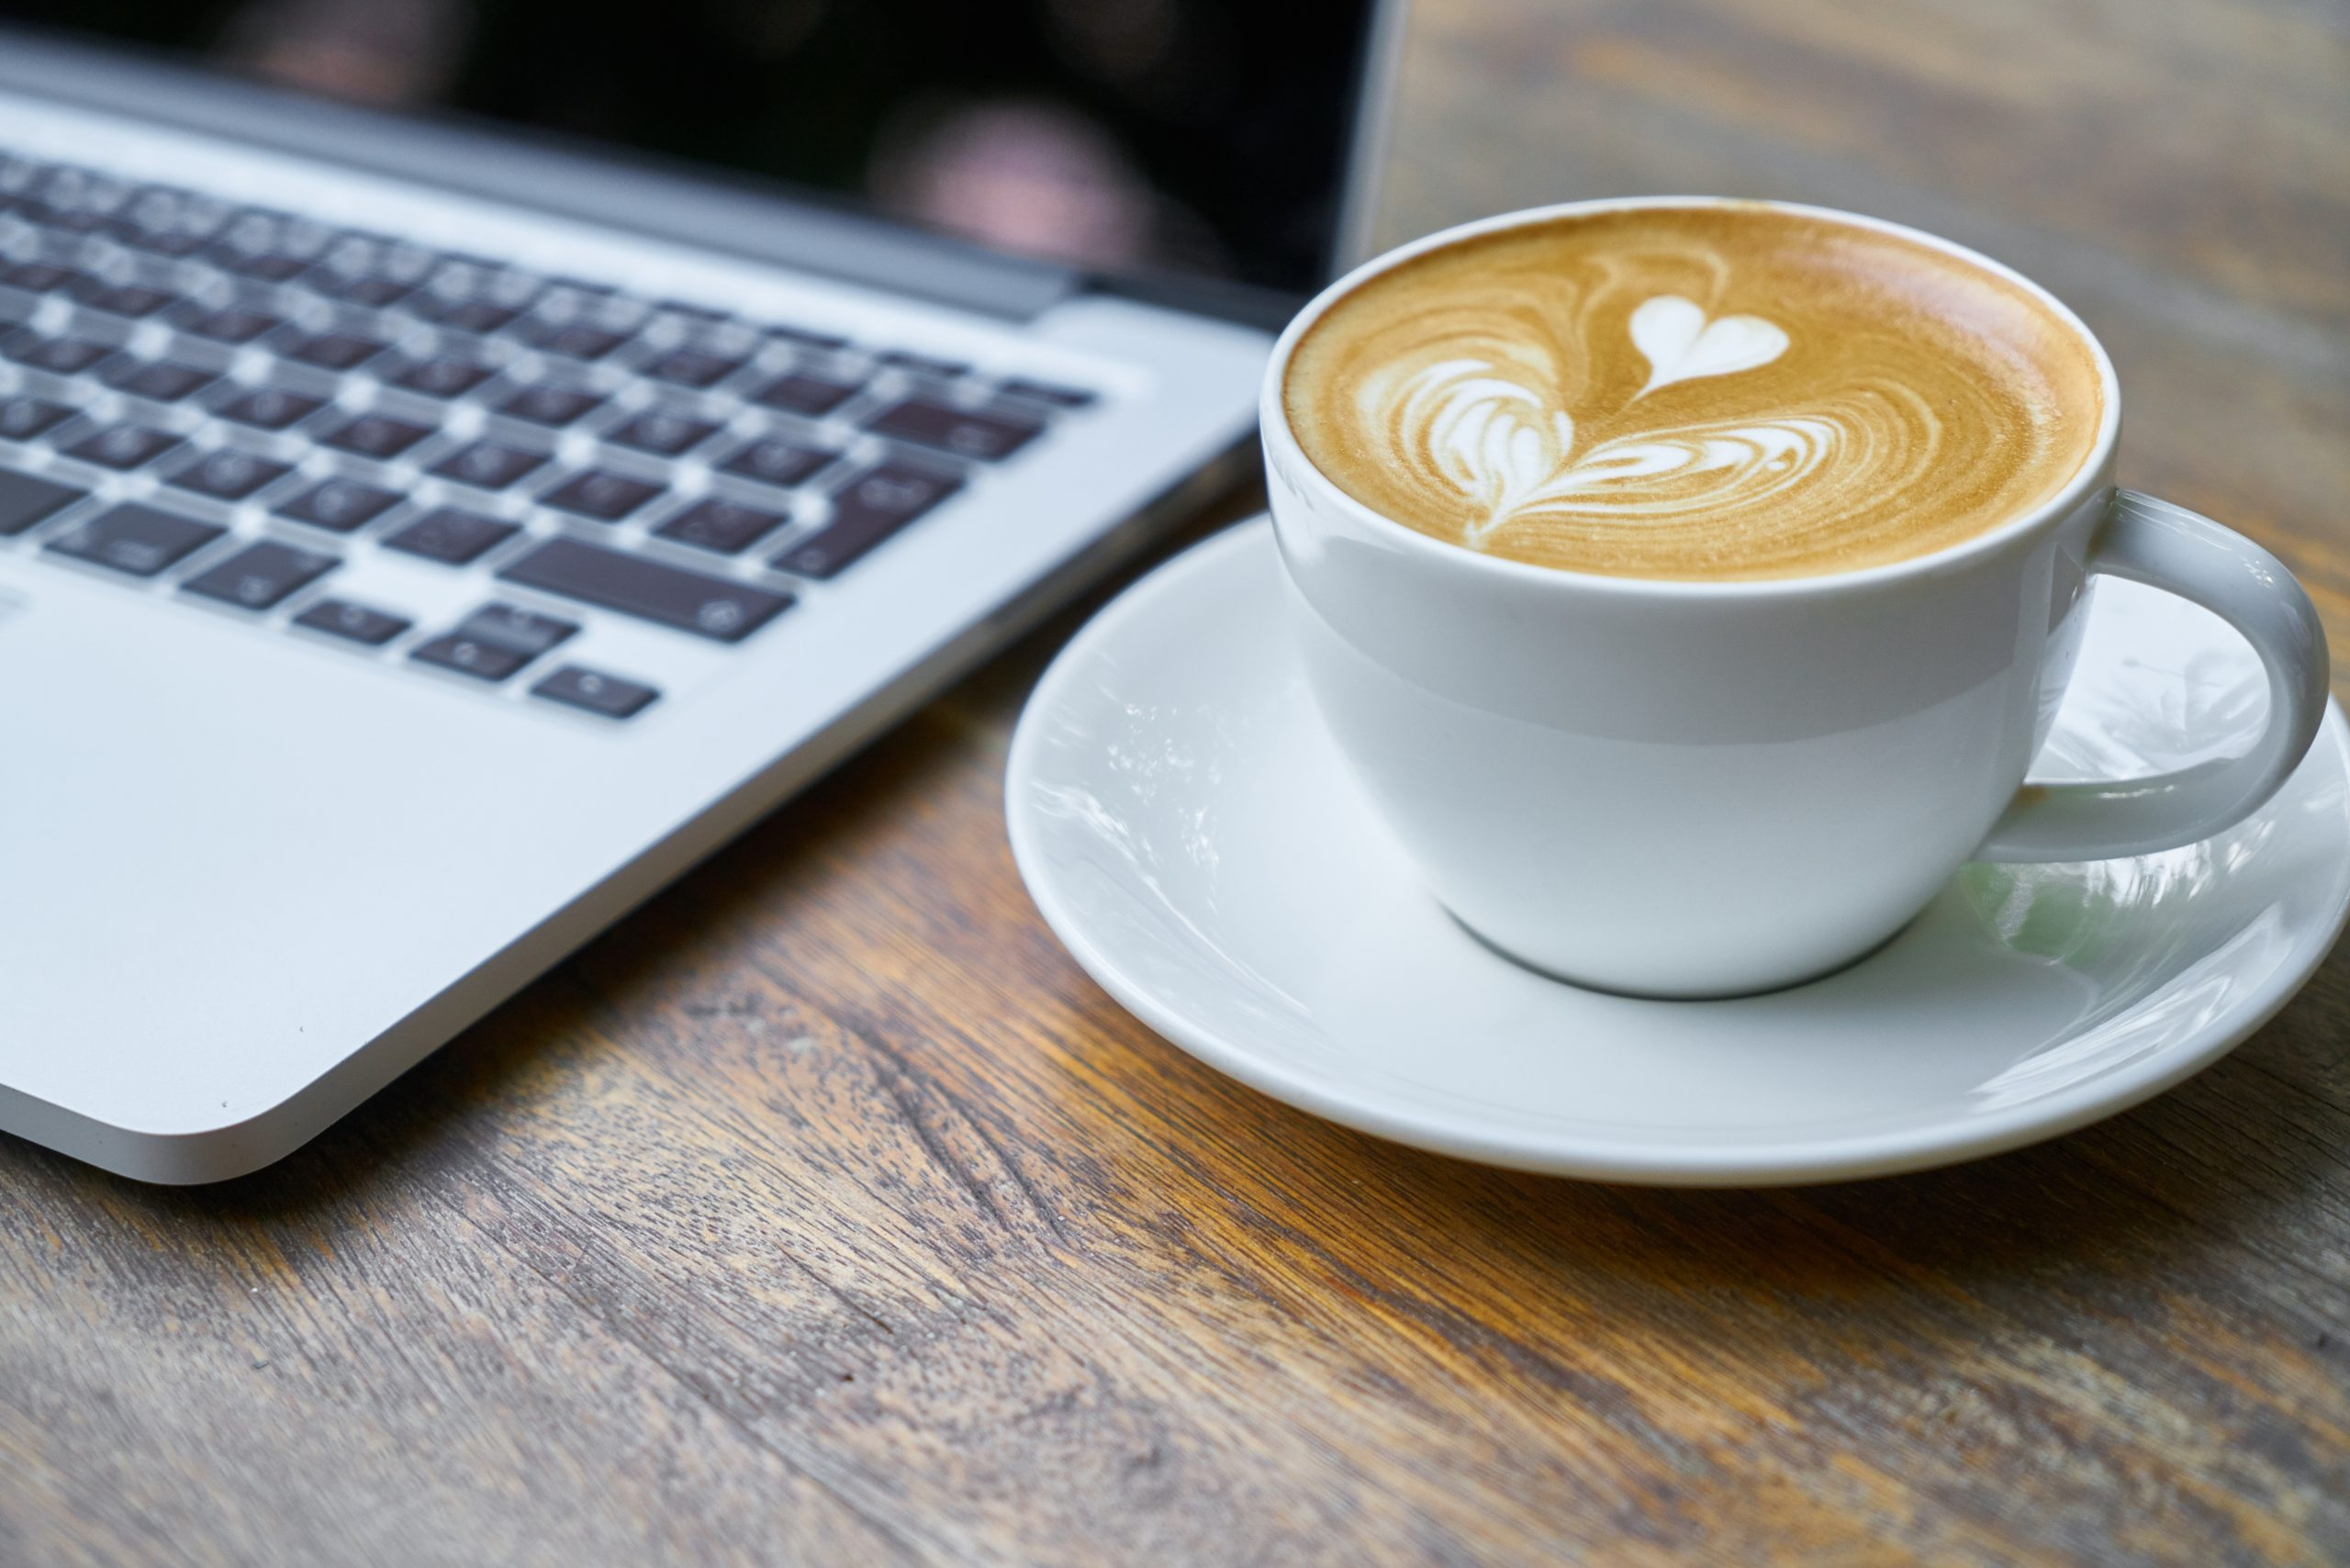 A Virtual Coffee Chat? Laptop and Latte